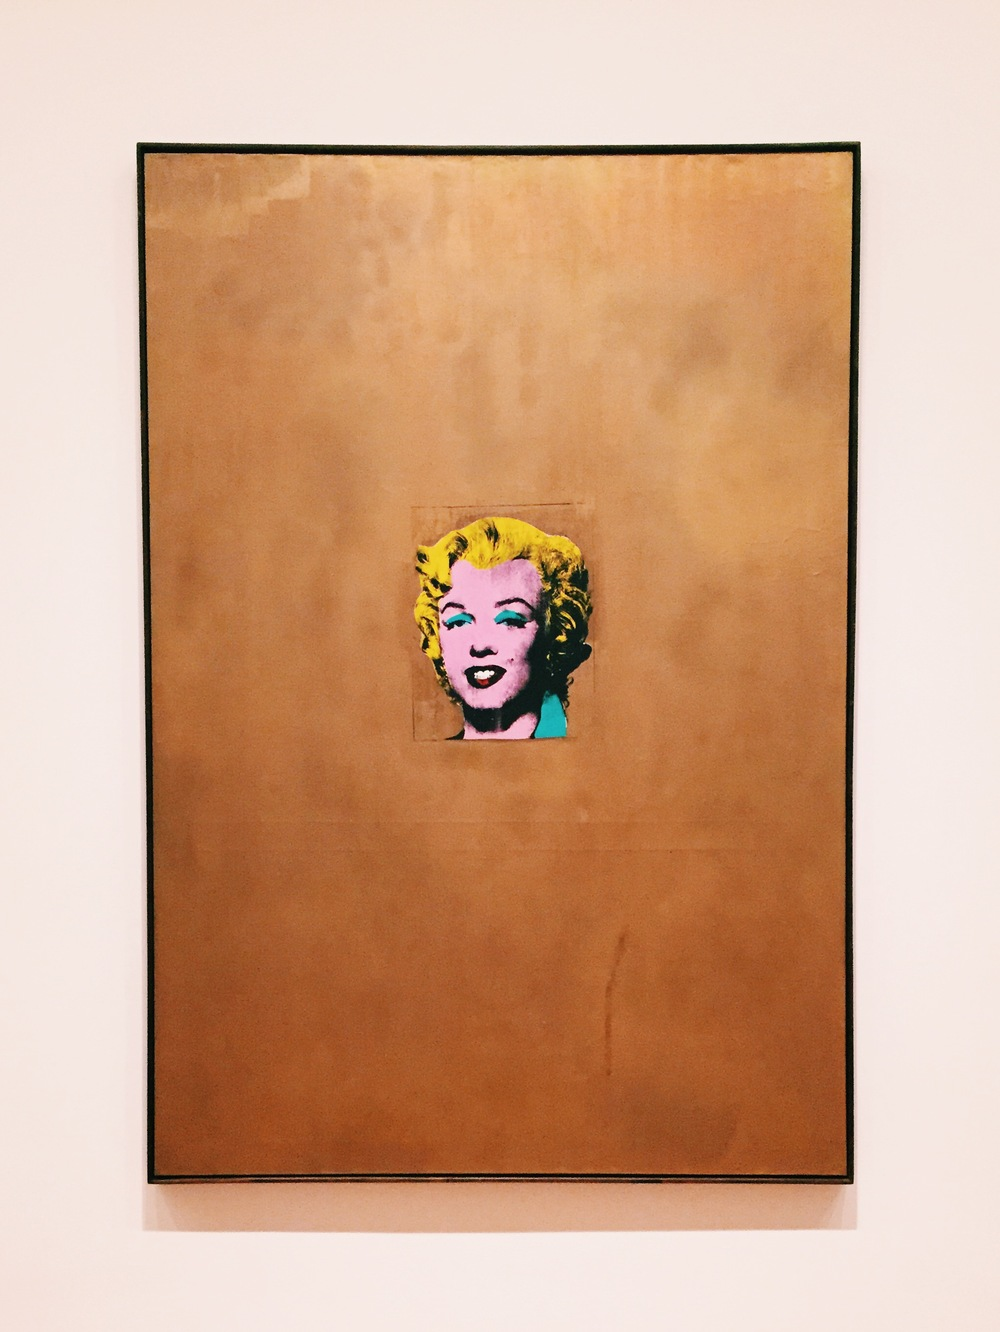 Andy Warhol //  Gold Marilyn Monroe  (1962)